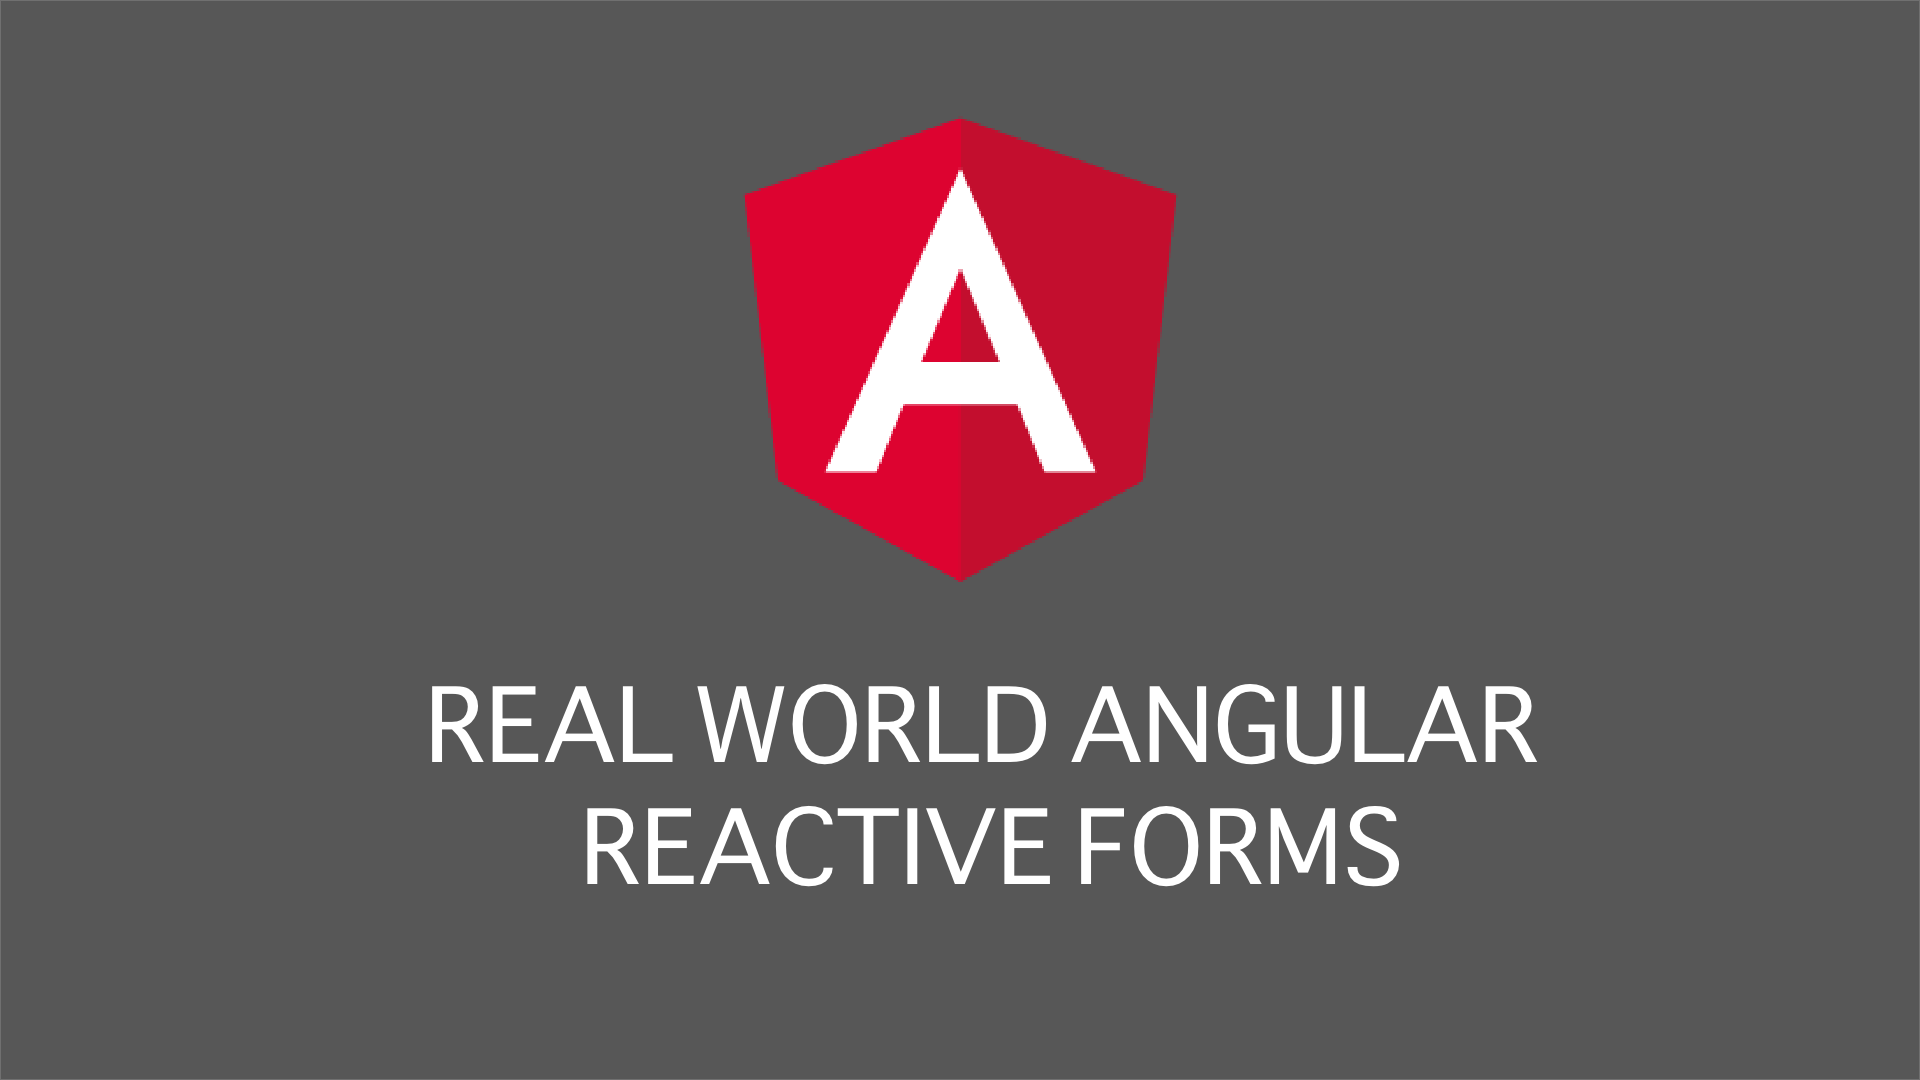 Real world example for angular reactive forms